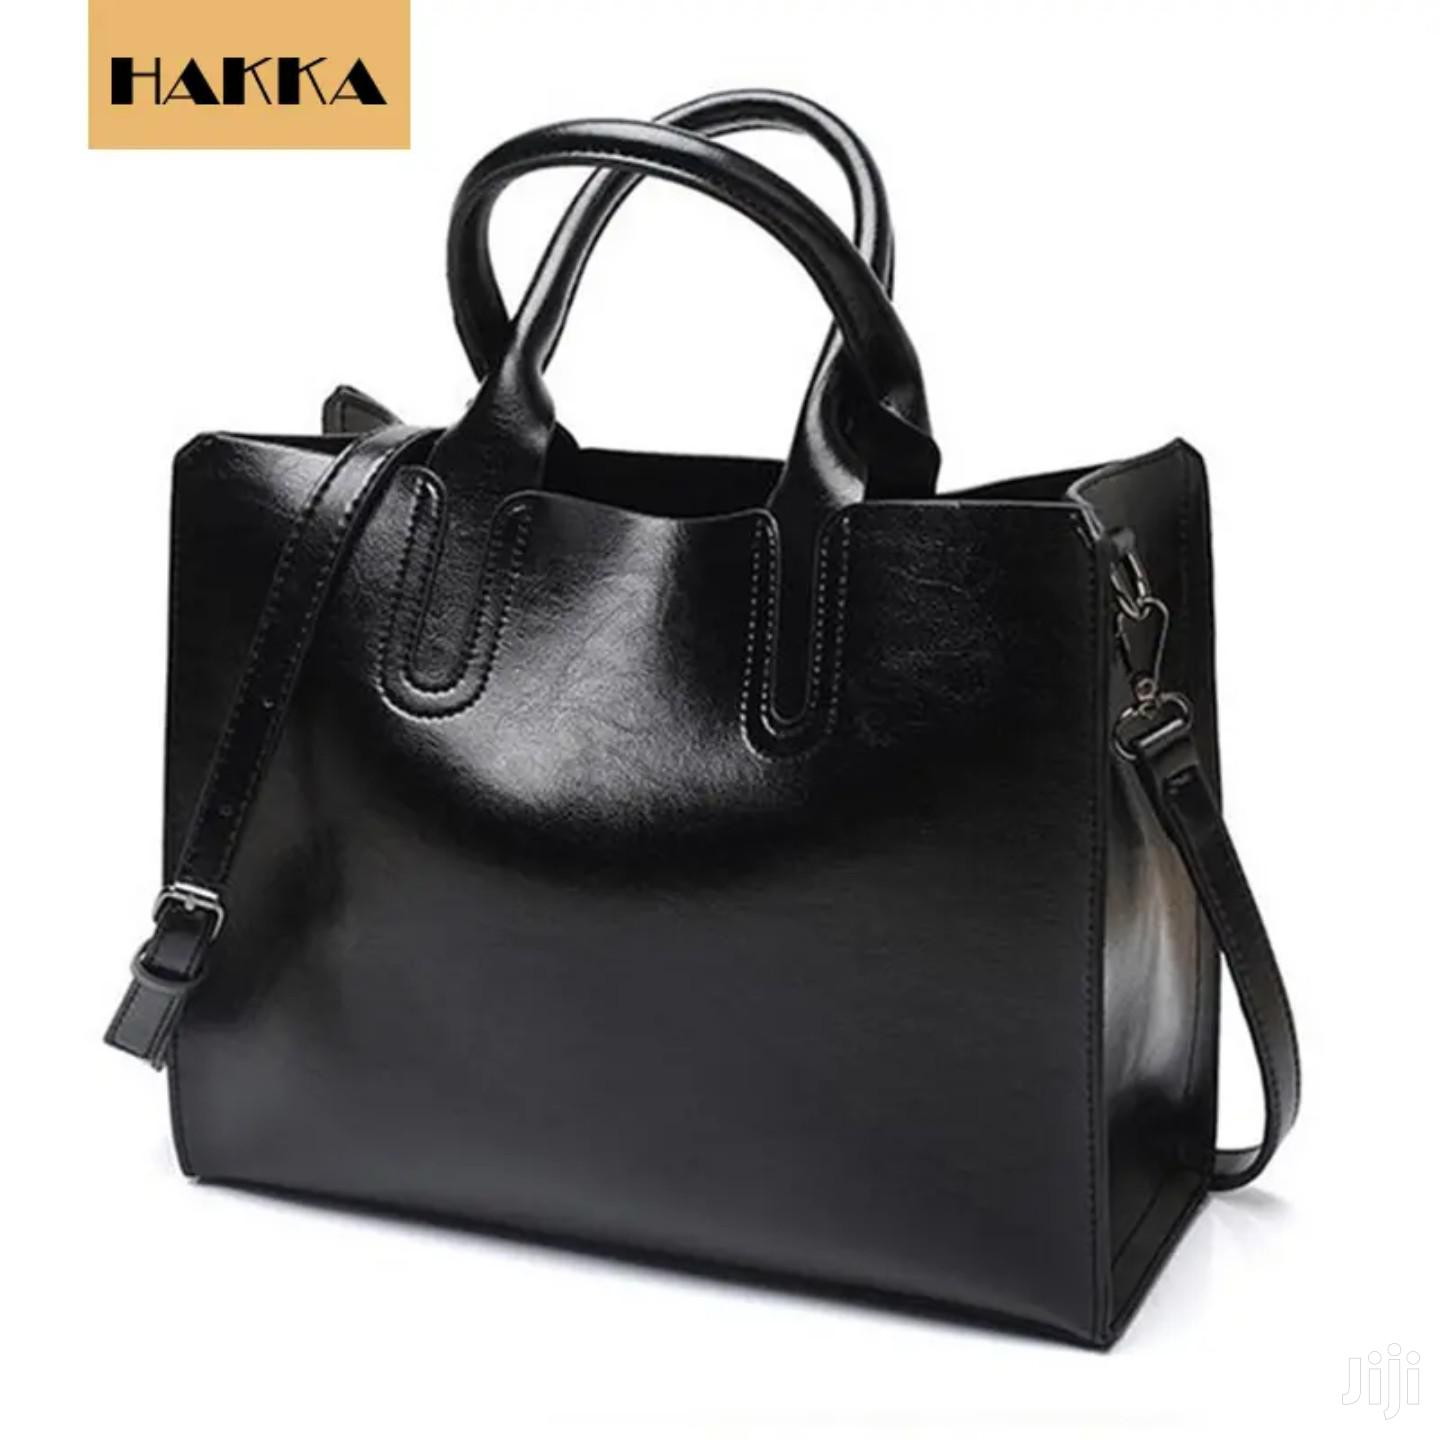 Women Handbags Pu Leather | Bags for sale in Umoja I, Nairobi, Kenya